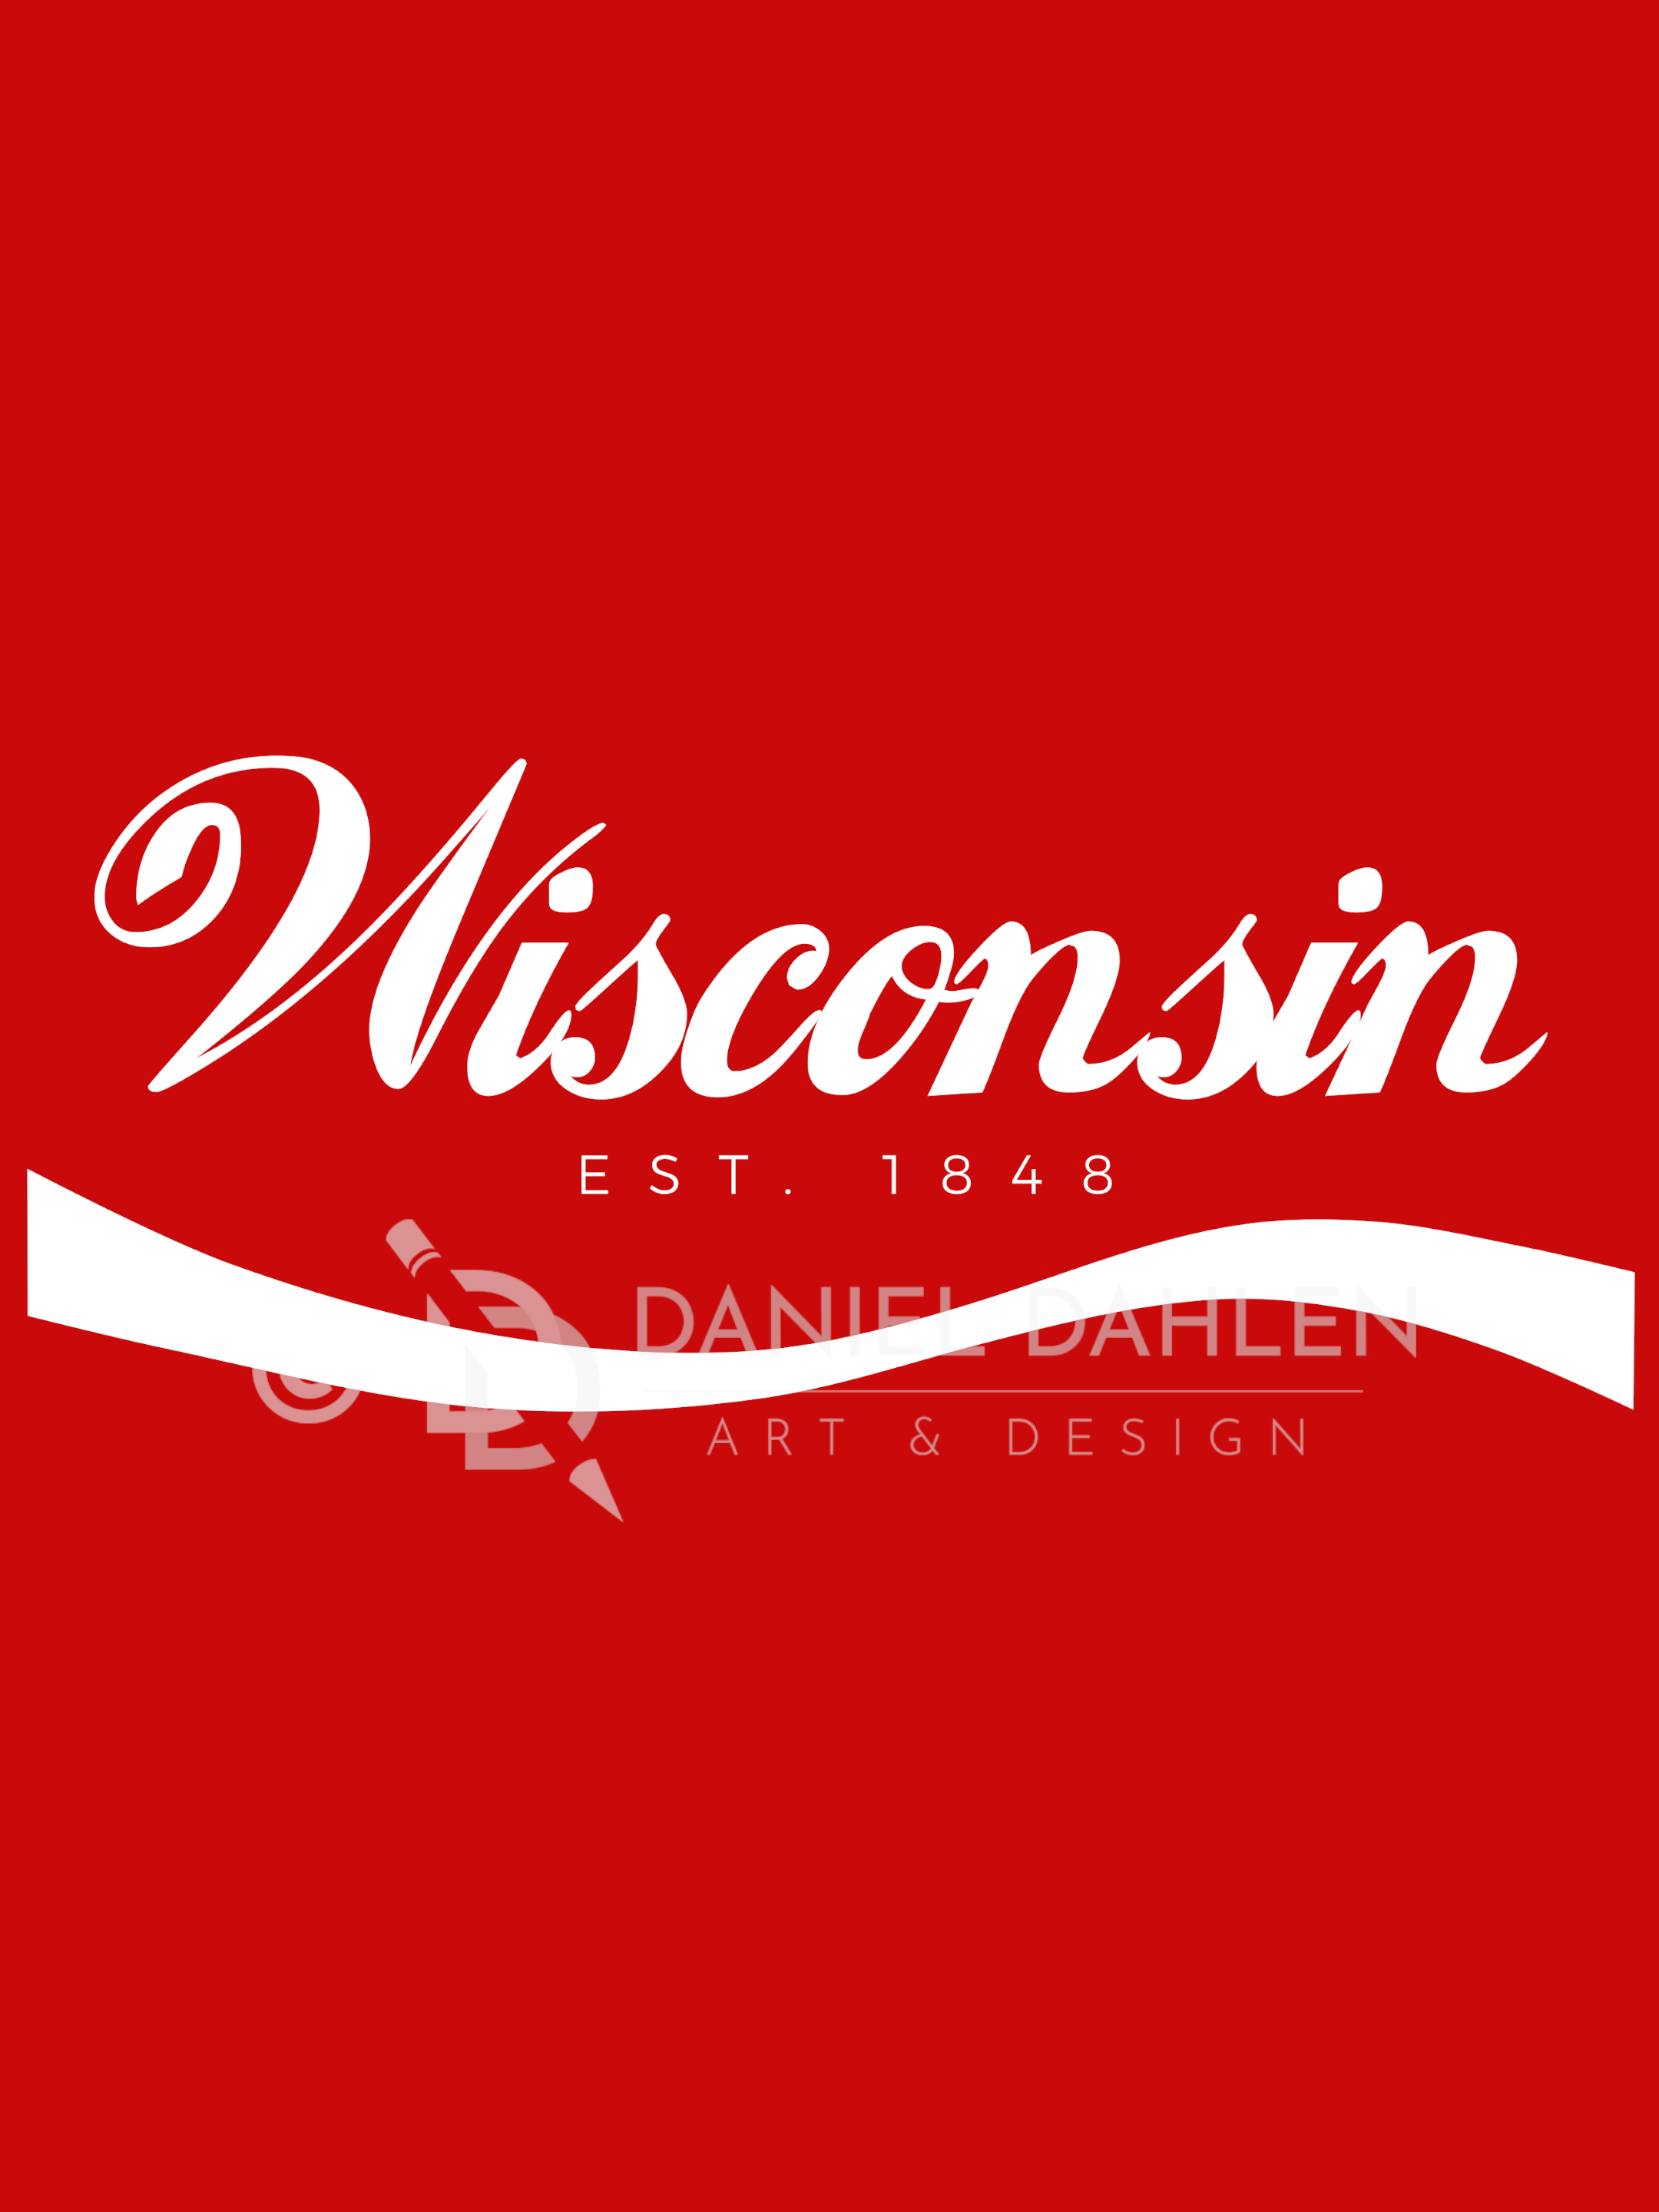 Wiscola Digital Design